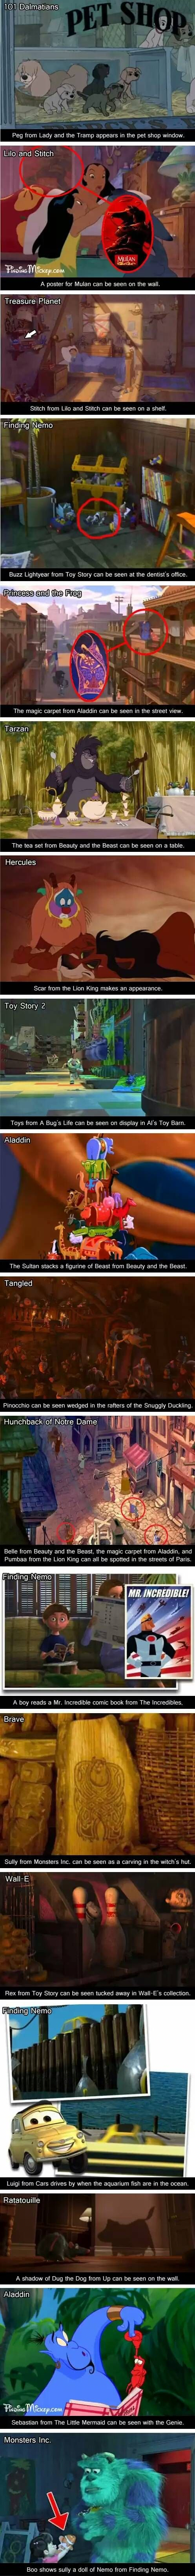 Oh my god. I didn't know how many references there were in the films